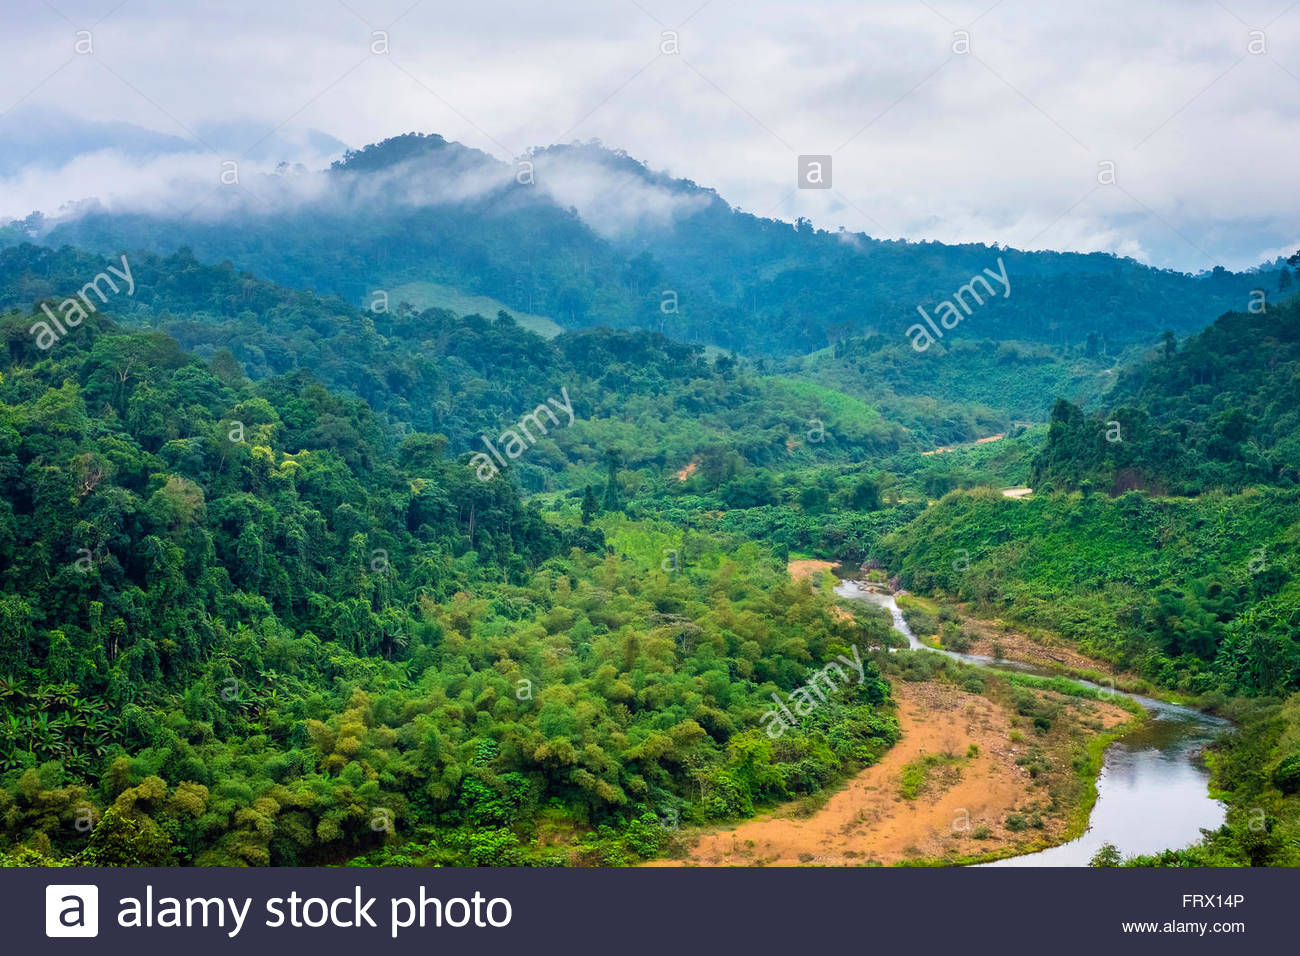 Paysage de la jungle le long de la route d'Ho Chi Minh à l'Ouest, District de Quang Ninh, Vietnam, Photo Stock